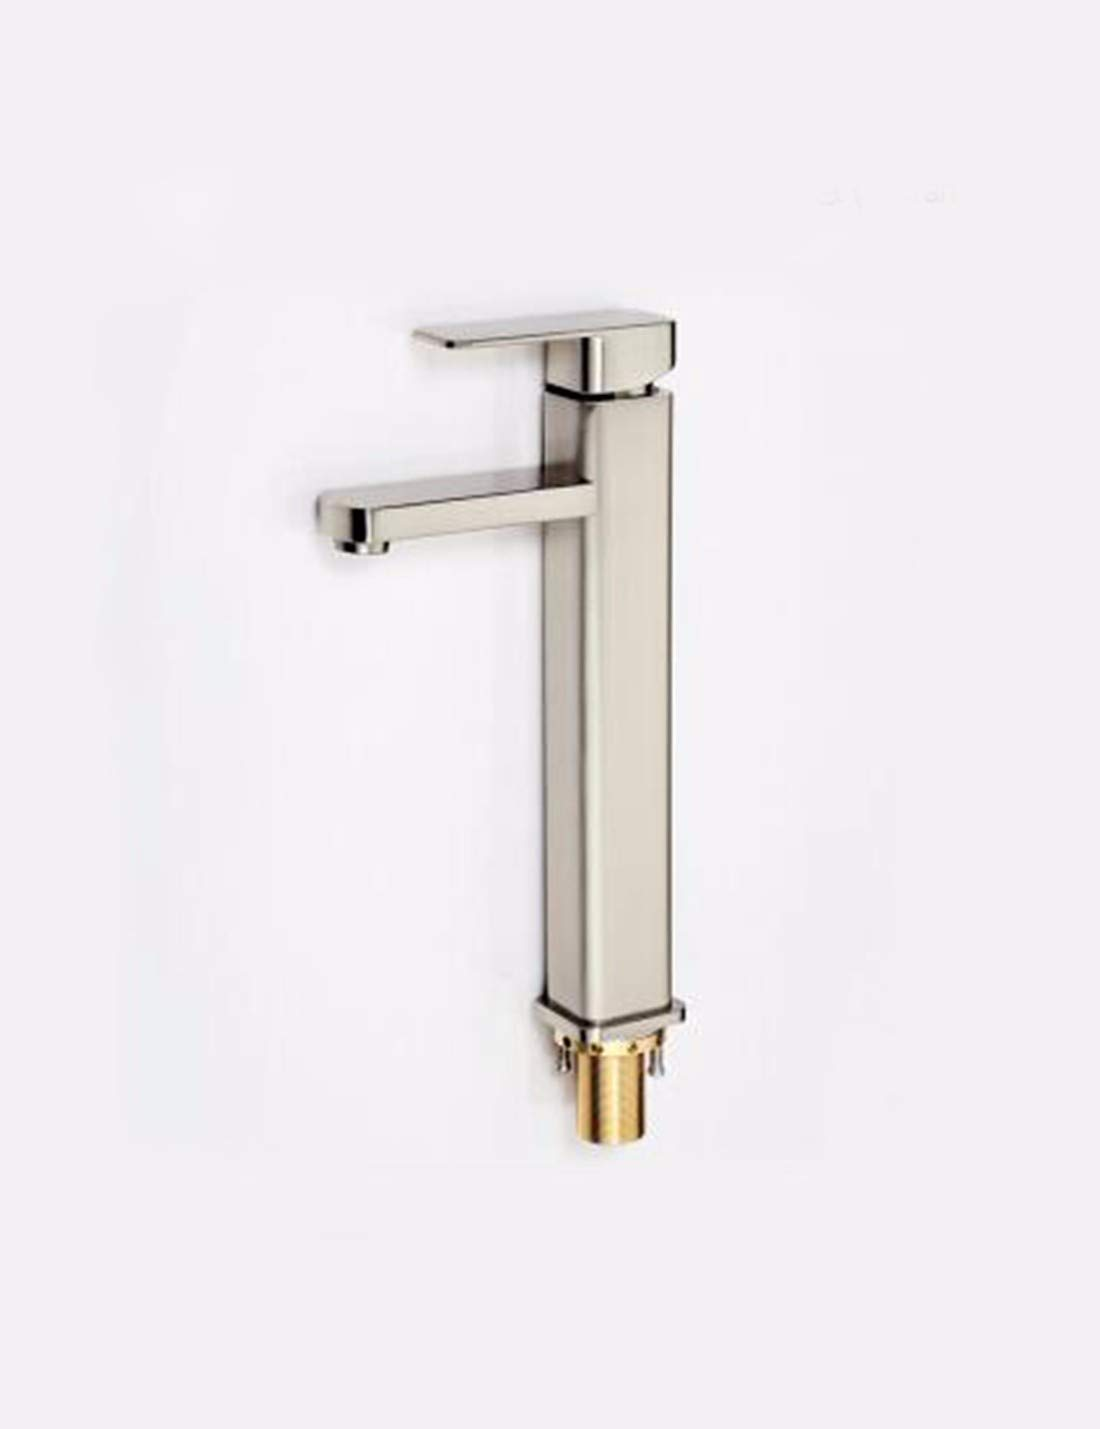 D Hlluya Professional Sink Mixer Tap Kitchen Faucet The copper basin faucet hot and cold wash basins bathroom vanity area above the high-taps,